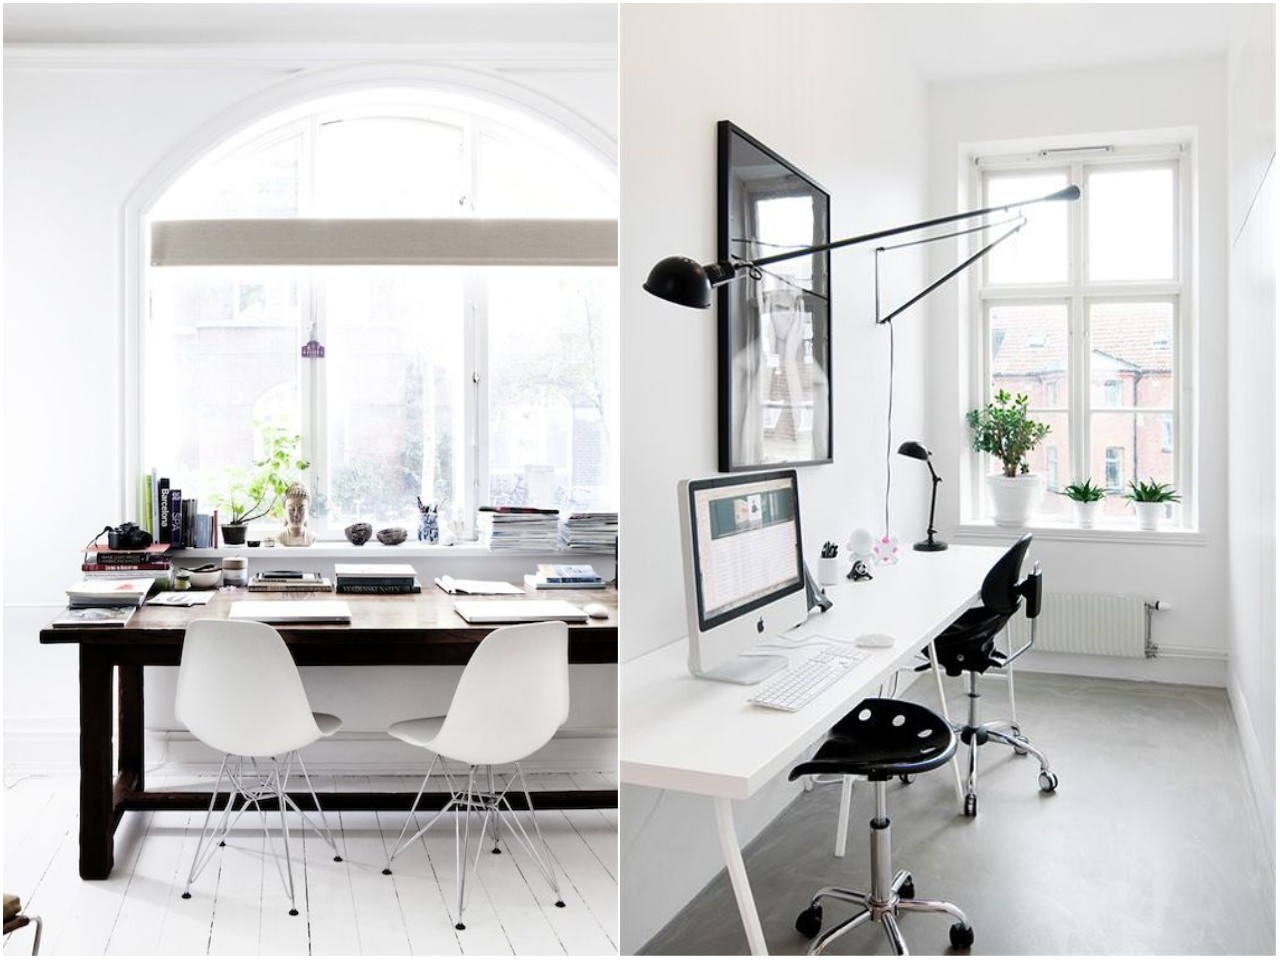 7 tips en dise o de oficinas peque as y modernas for Decoracion oficinas modernas